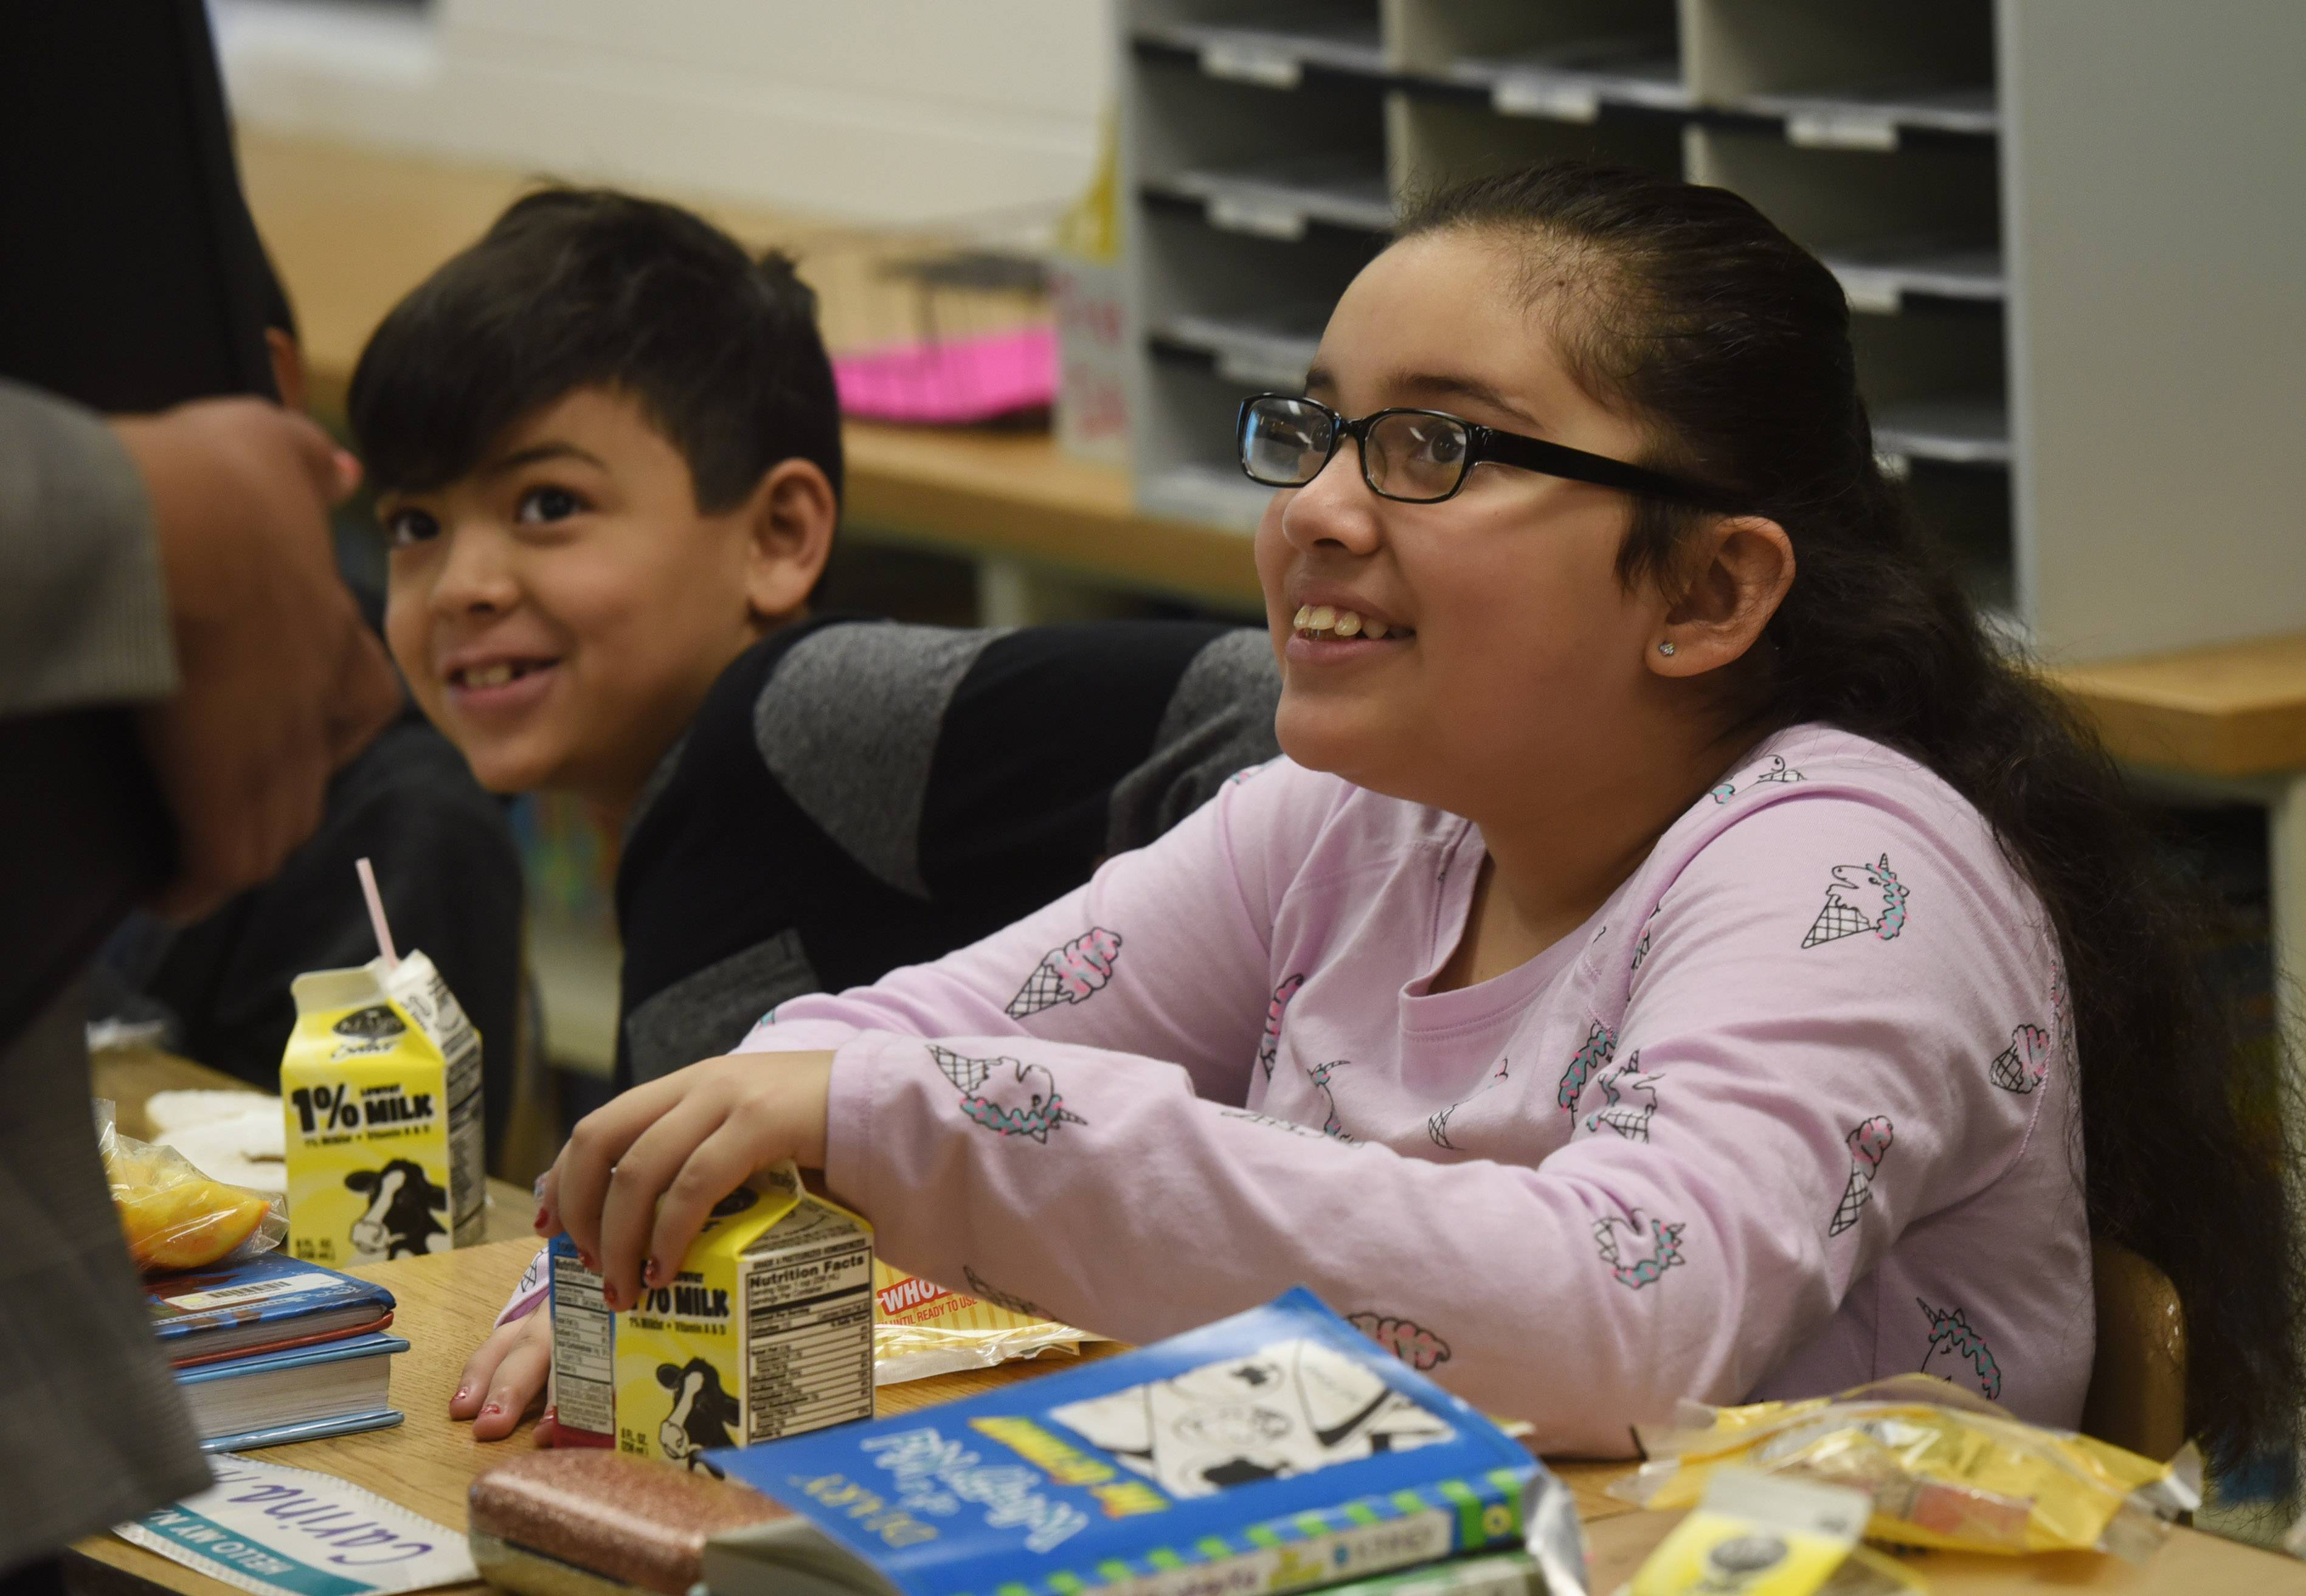 Fourth-grader Carina Aguilar chats with visitors in her classroom Thursday as the Breakfast After the Bell program is showcased at Mark Twain Elementary School in Wheeling. The breakfast was whole-grain bagels, light cream cheese, fresh orange wedges, pure strawberry-kiwi juice and milk.